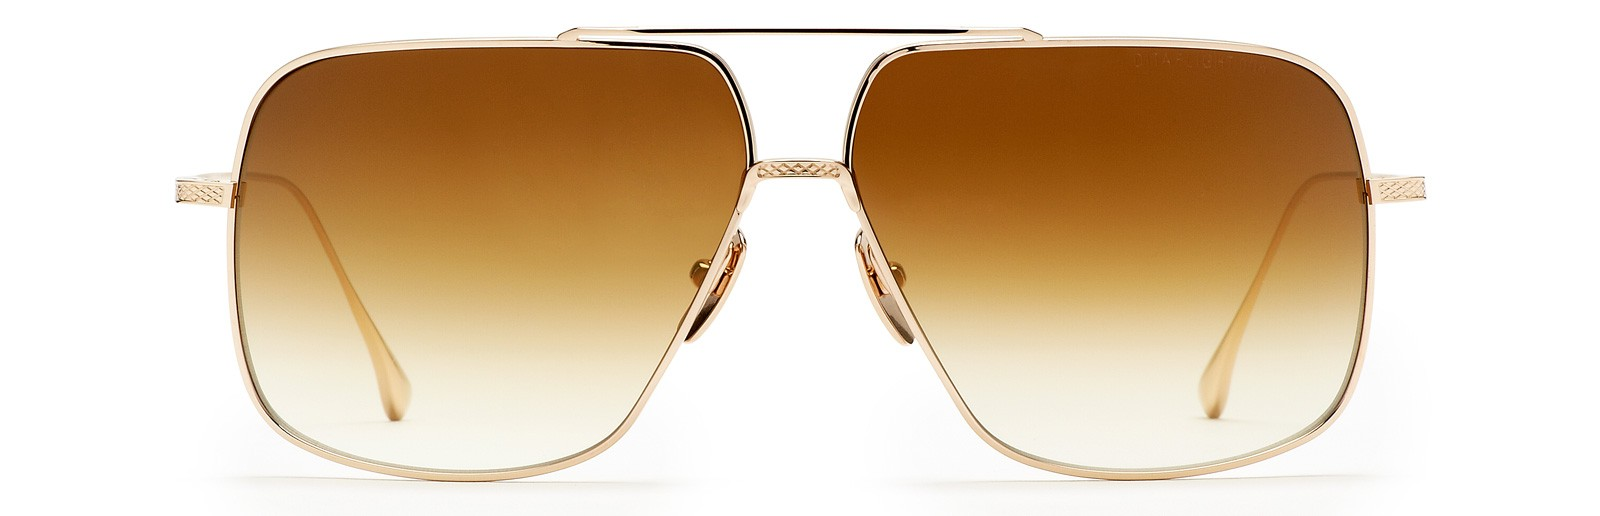 0d6142bdcbb Shop  Dita flight 005 Aviators in Gold